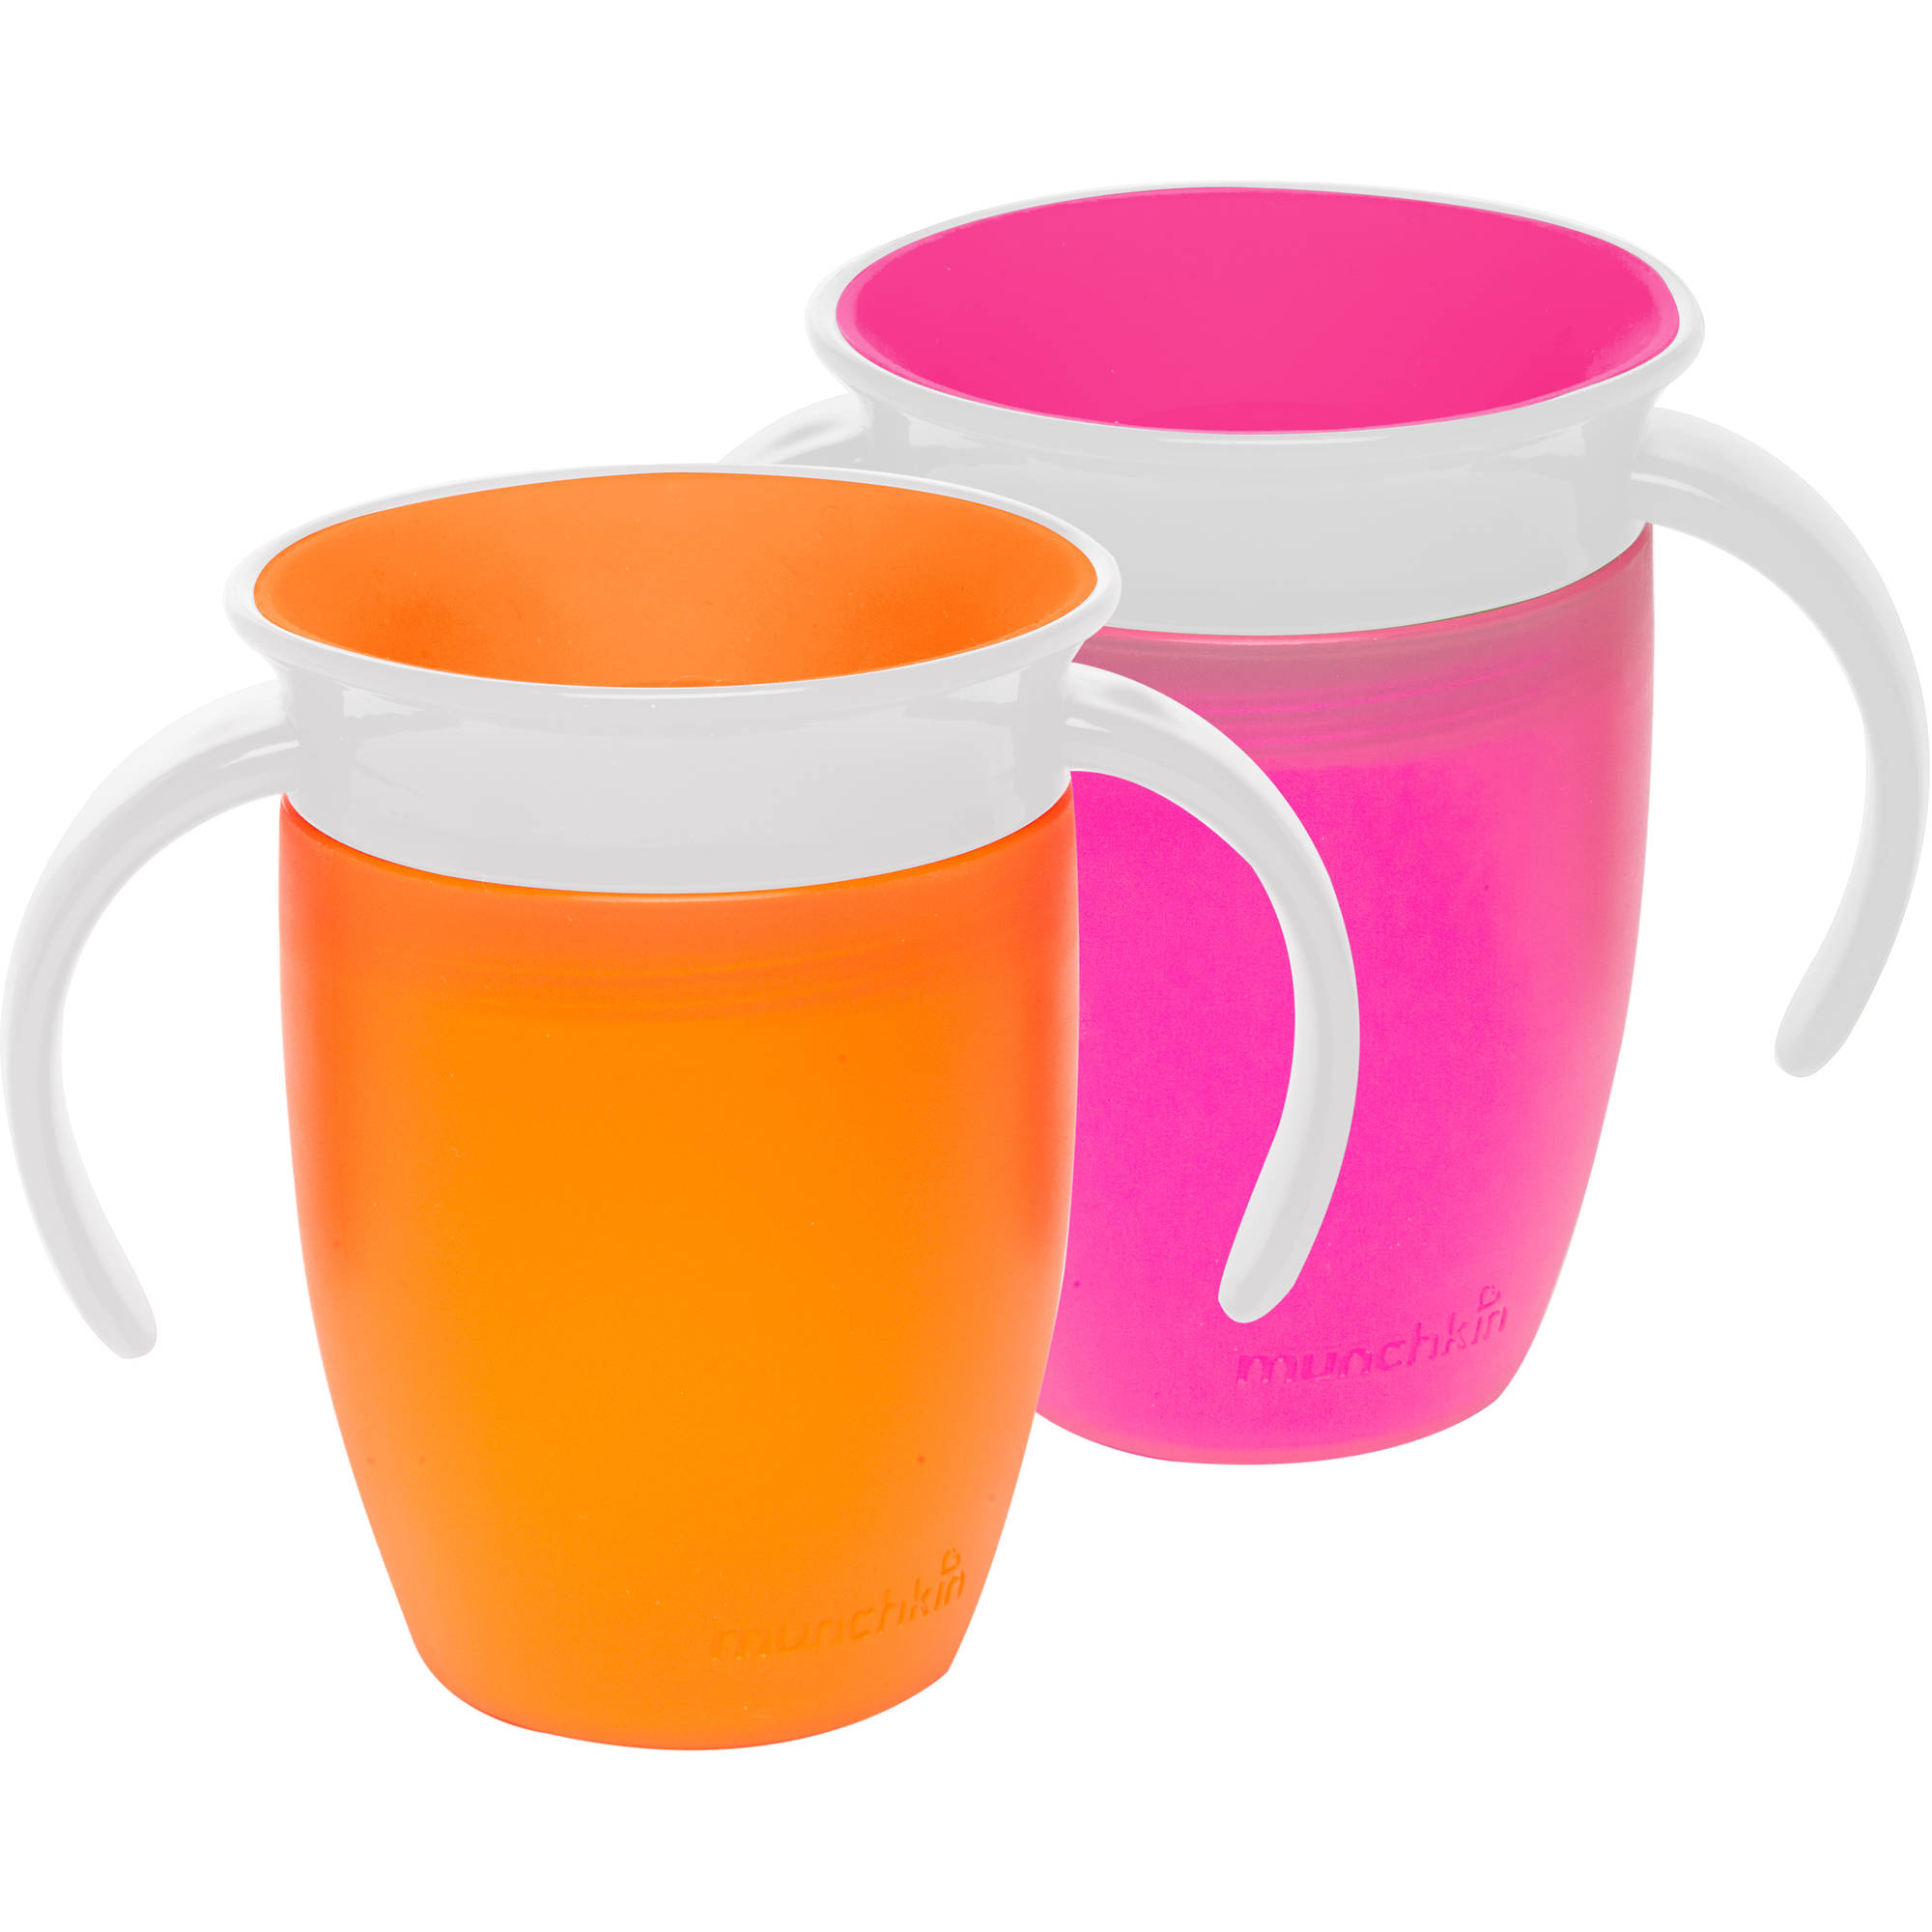 Munchkin Miracle 360 7oz Trainer Cup, BPA-Free, 2-Pack, Pink Orange by Munchkin